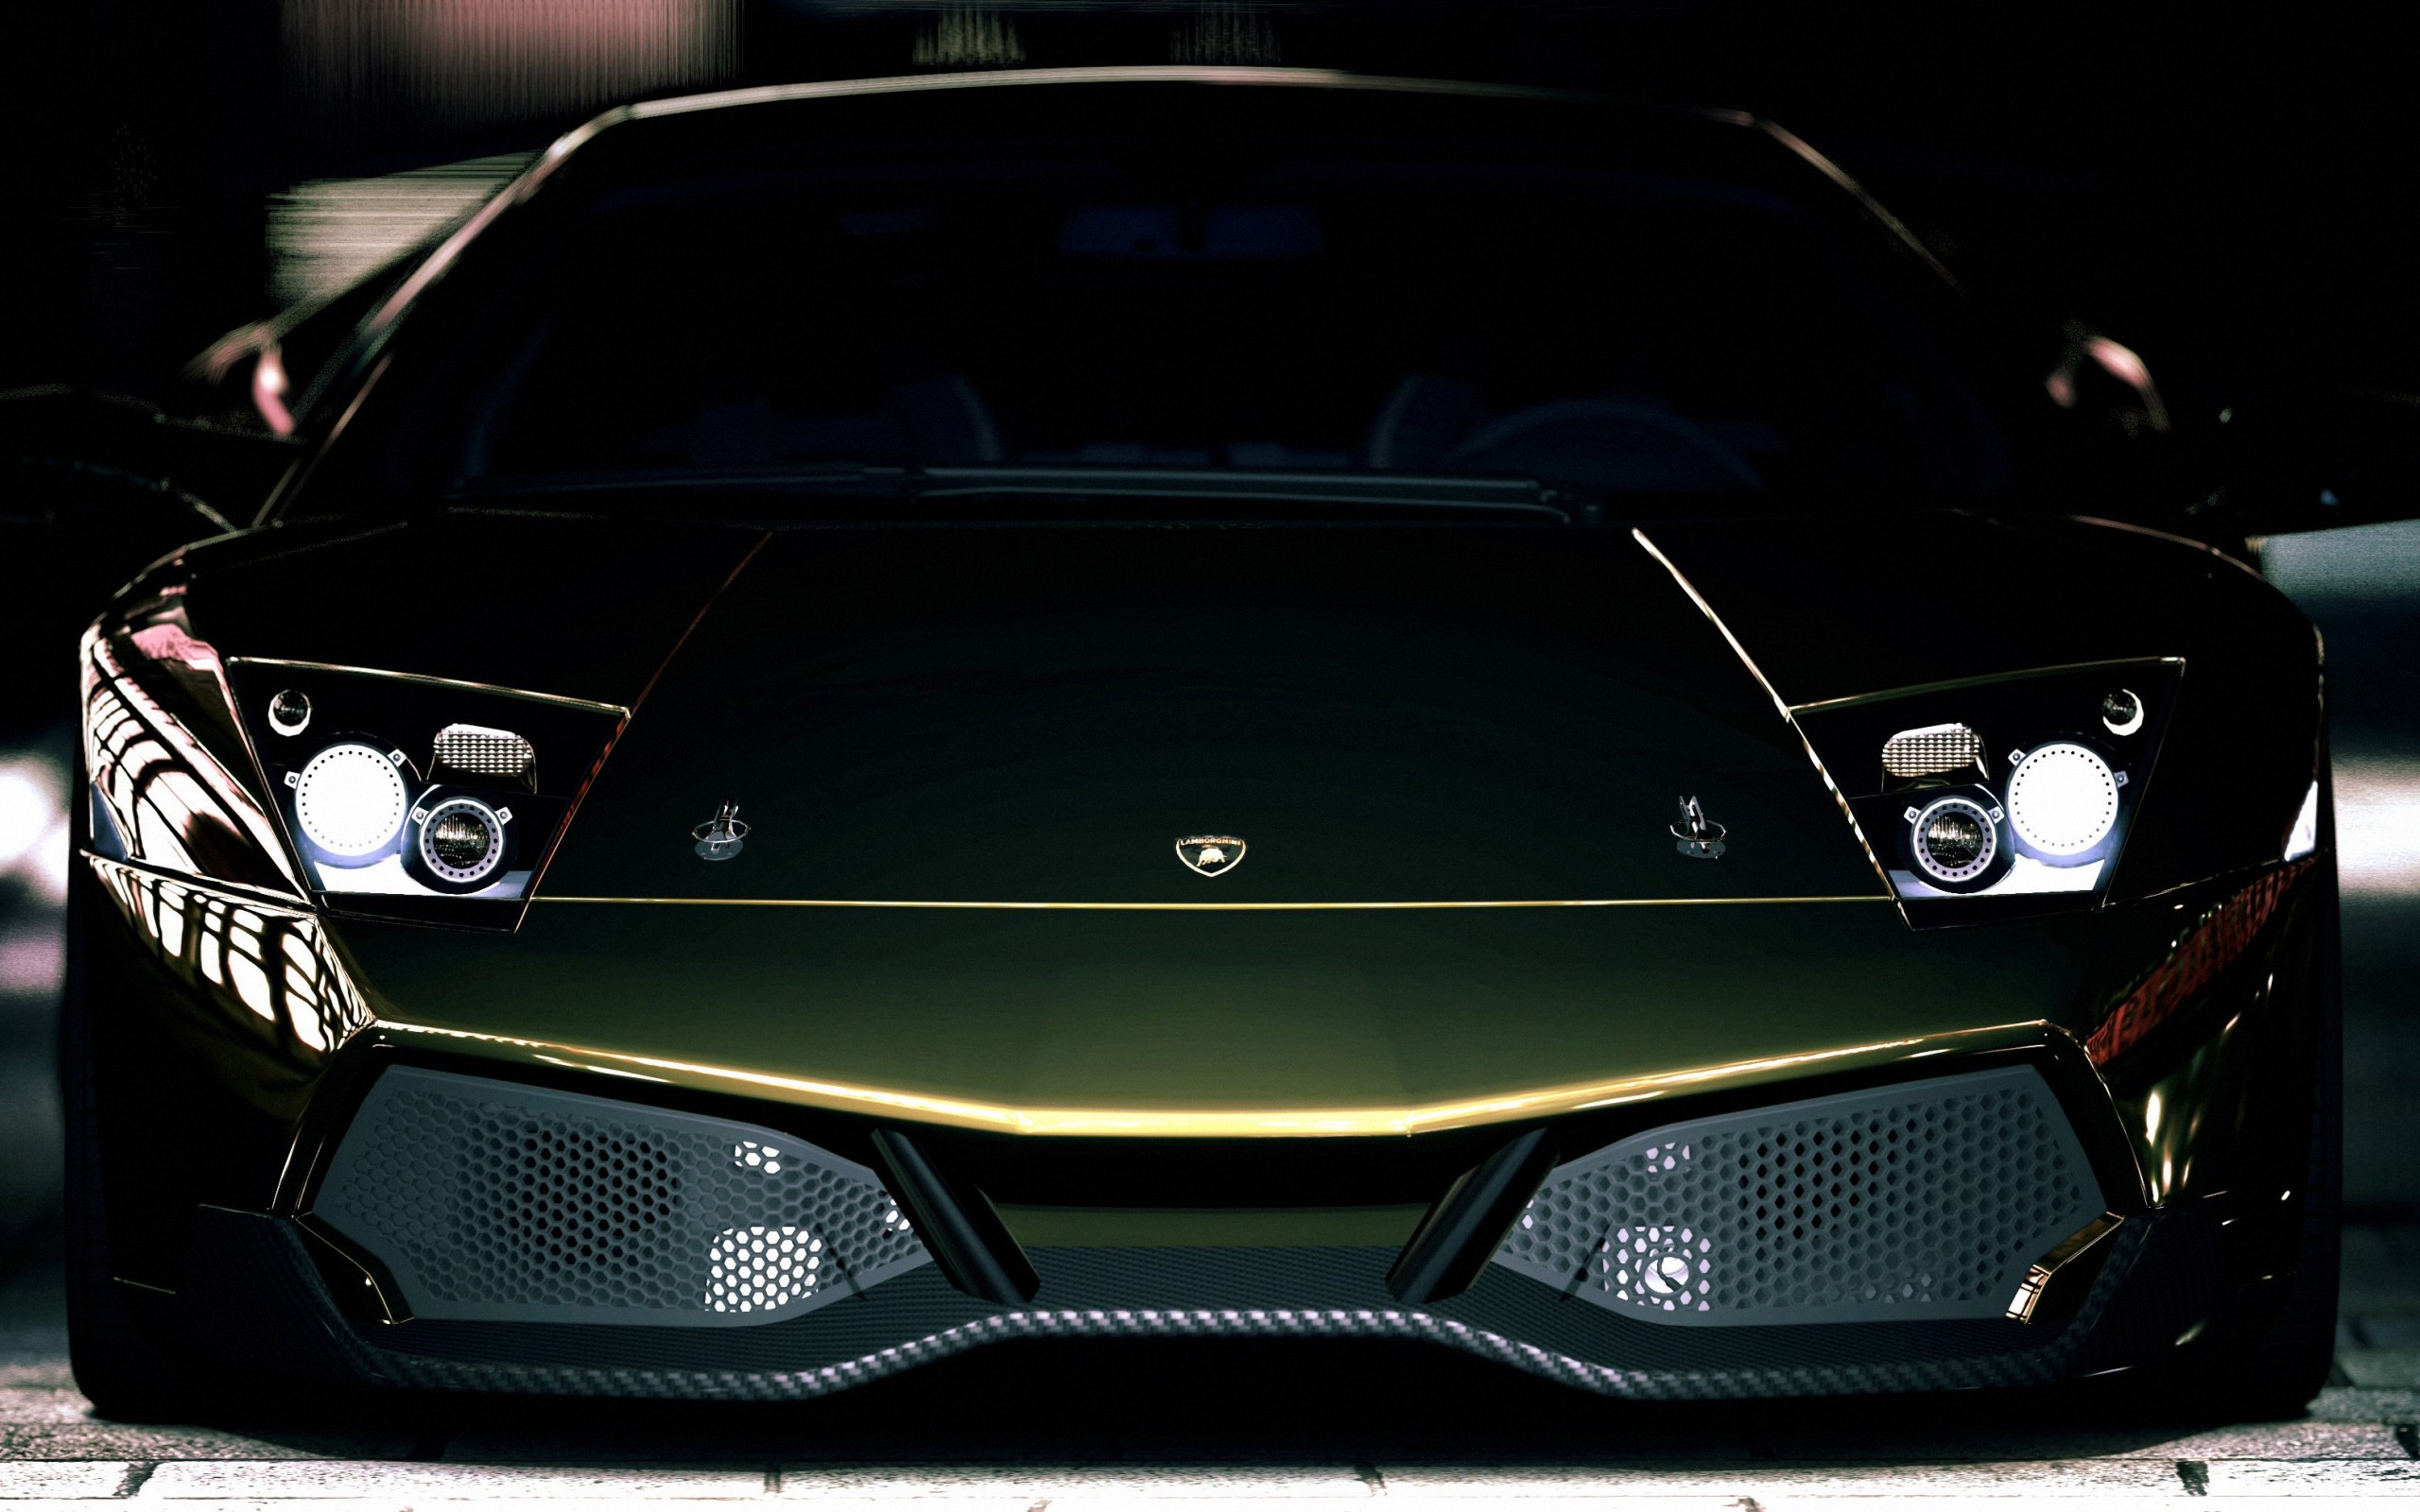 Lamborghini Wallpapers HD Wallpapers 2560x1600